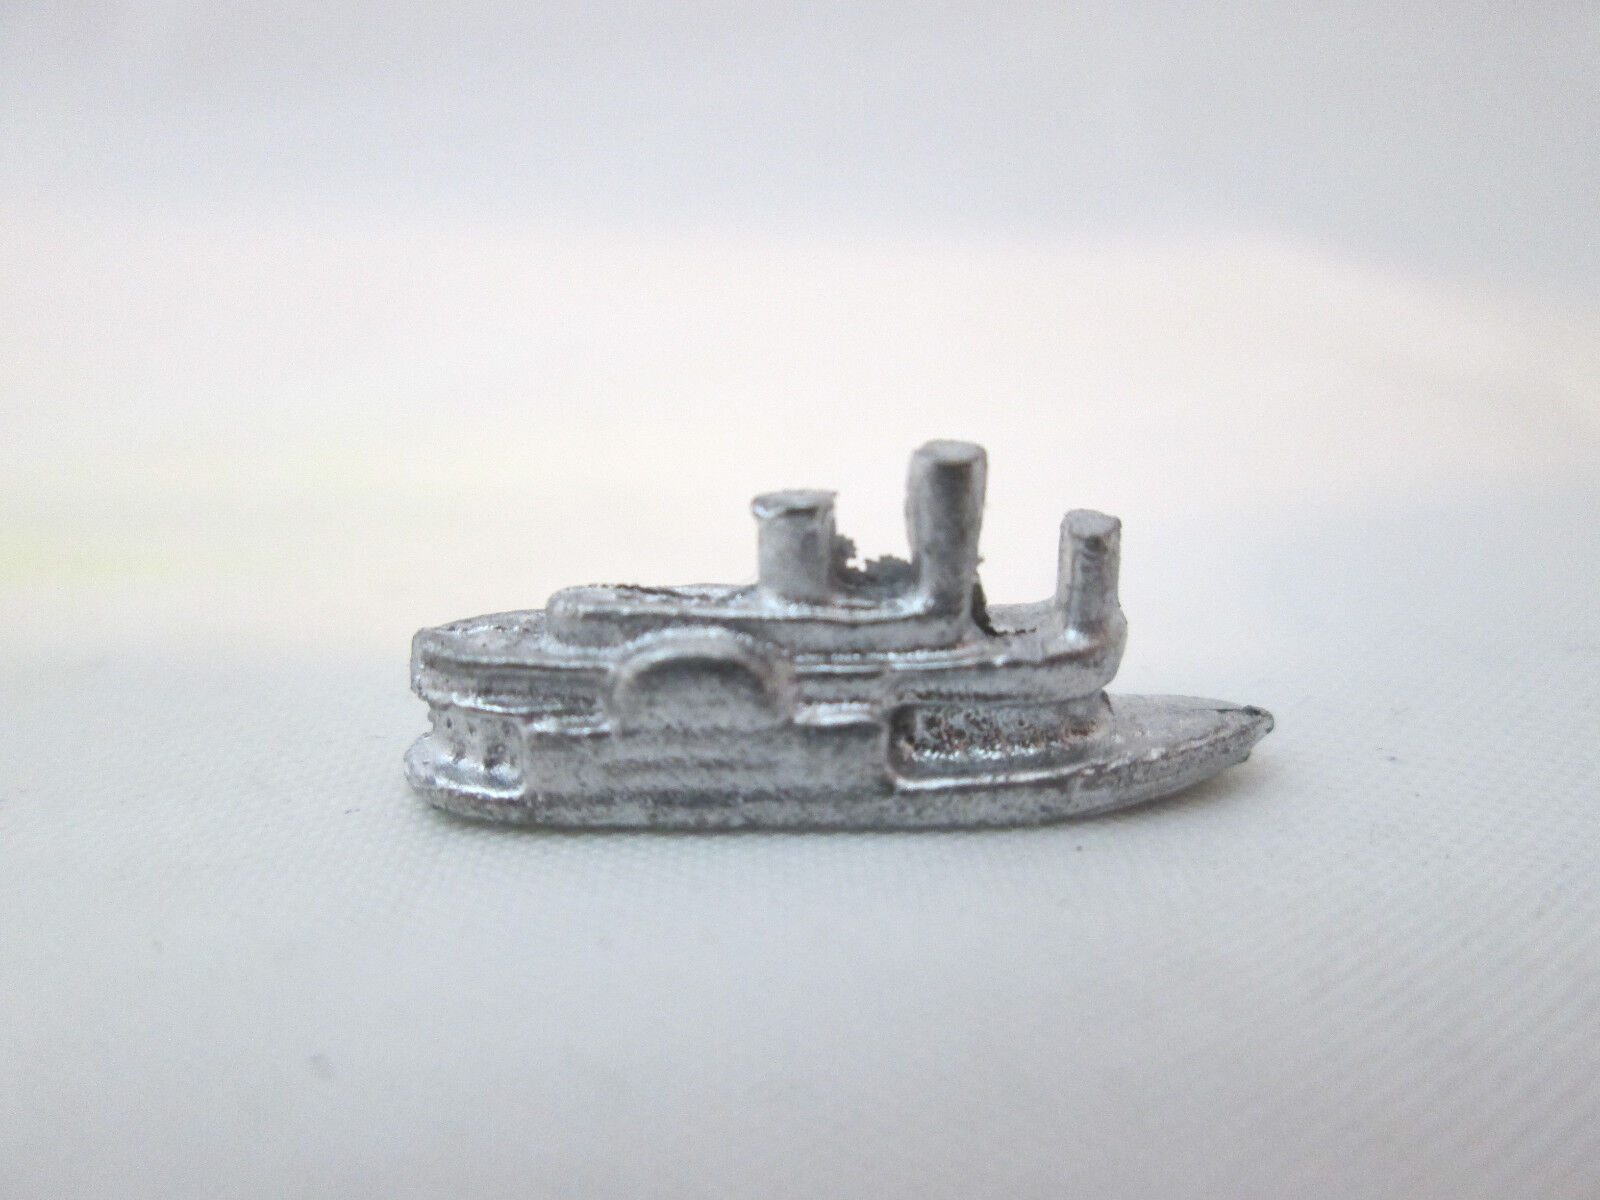 Dollhouse Miniature Unfinished Metal Toy  River Boat